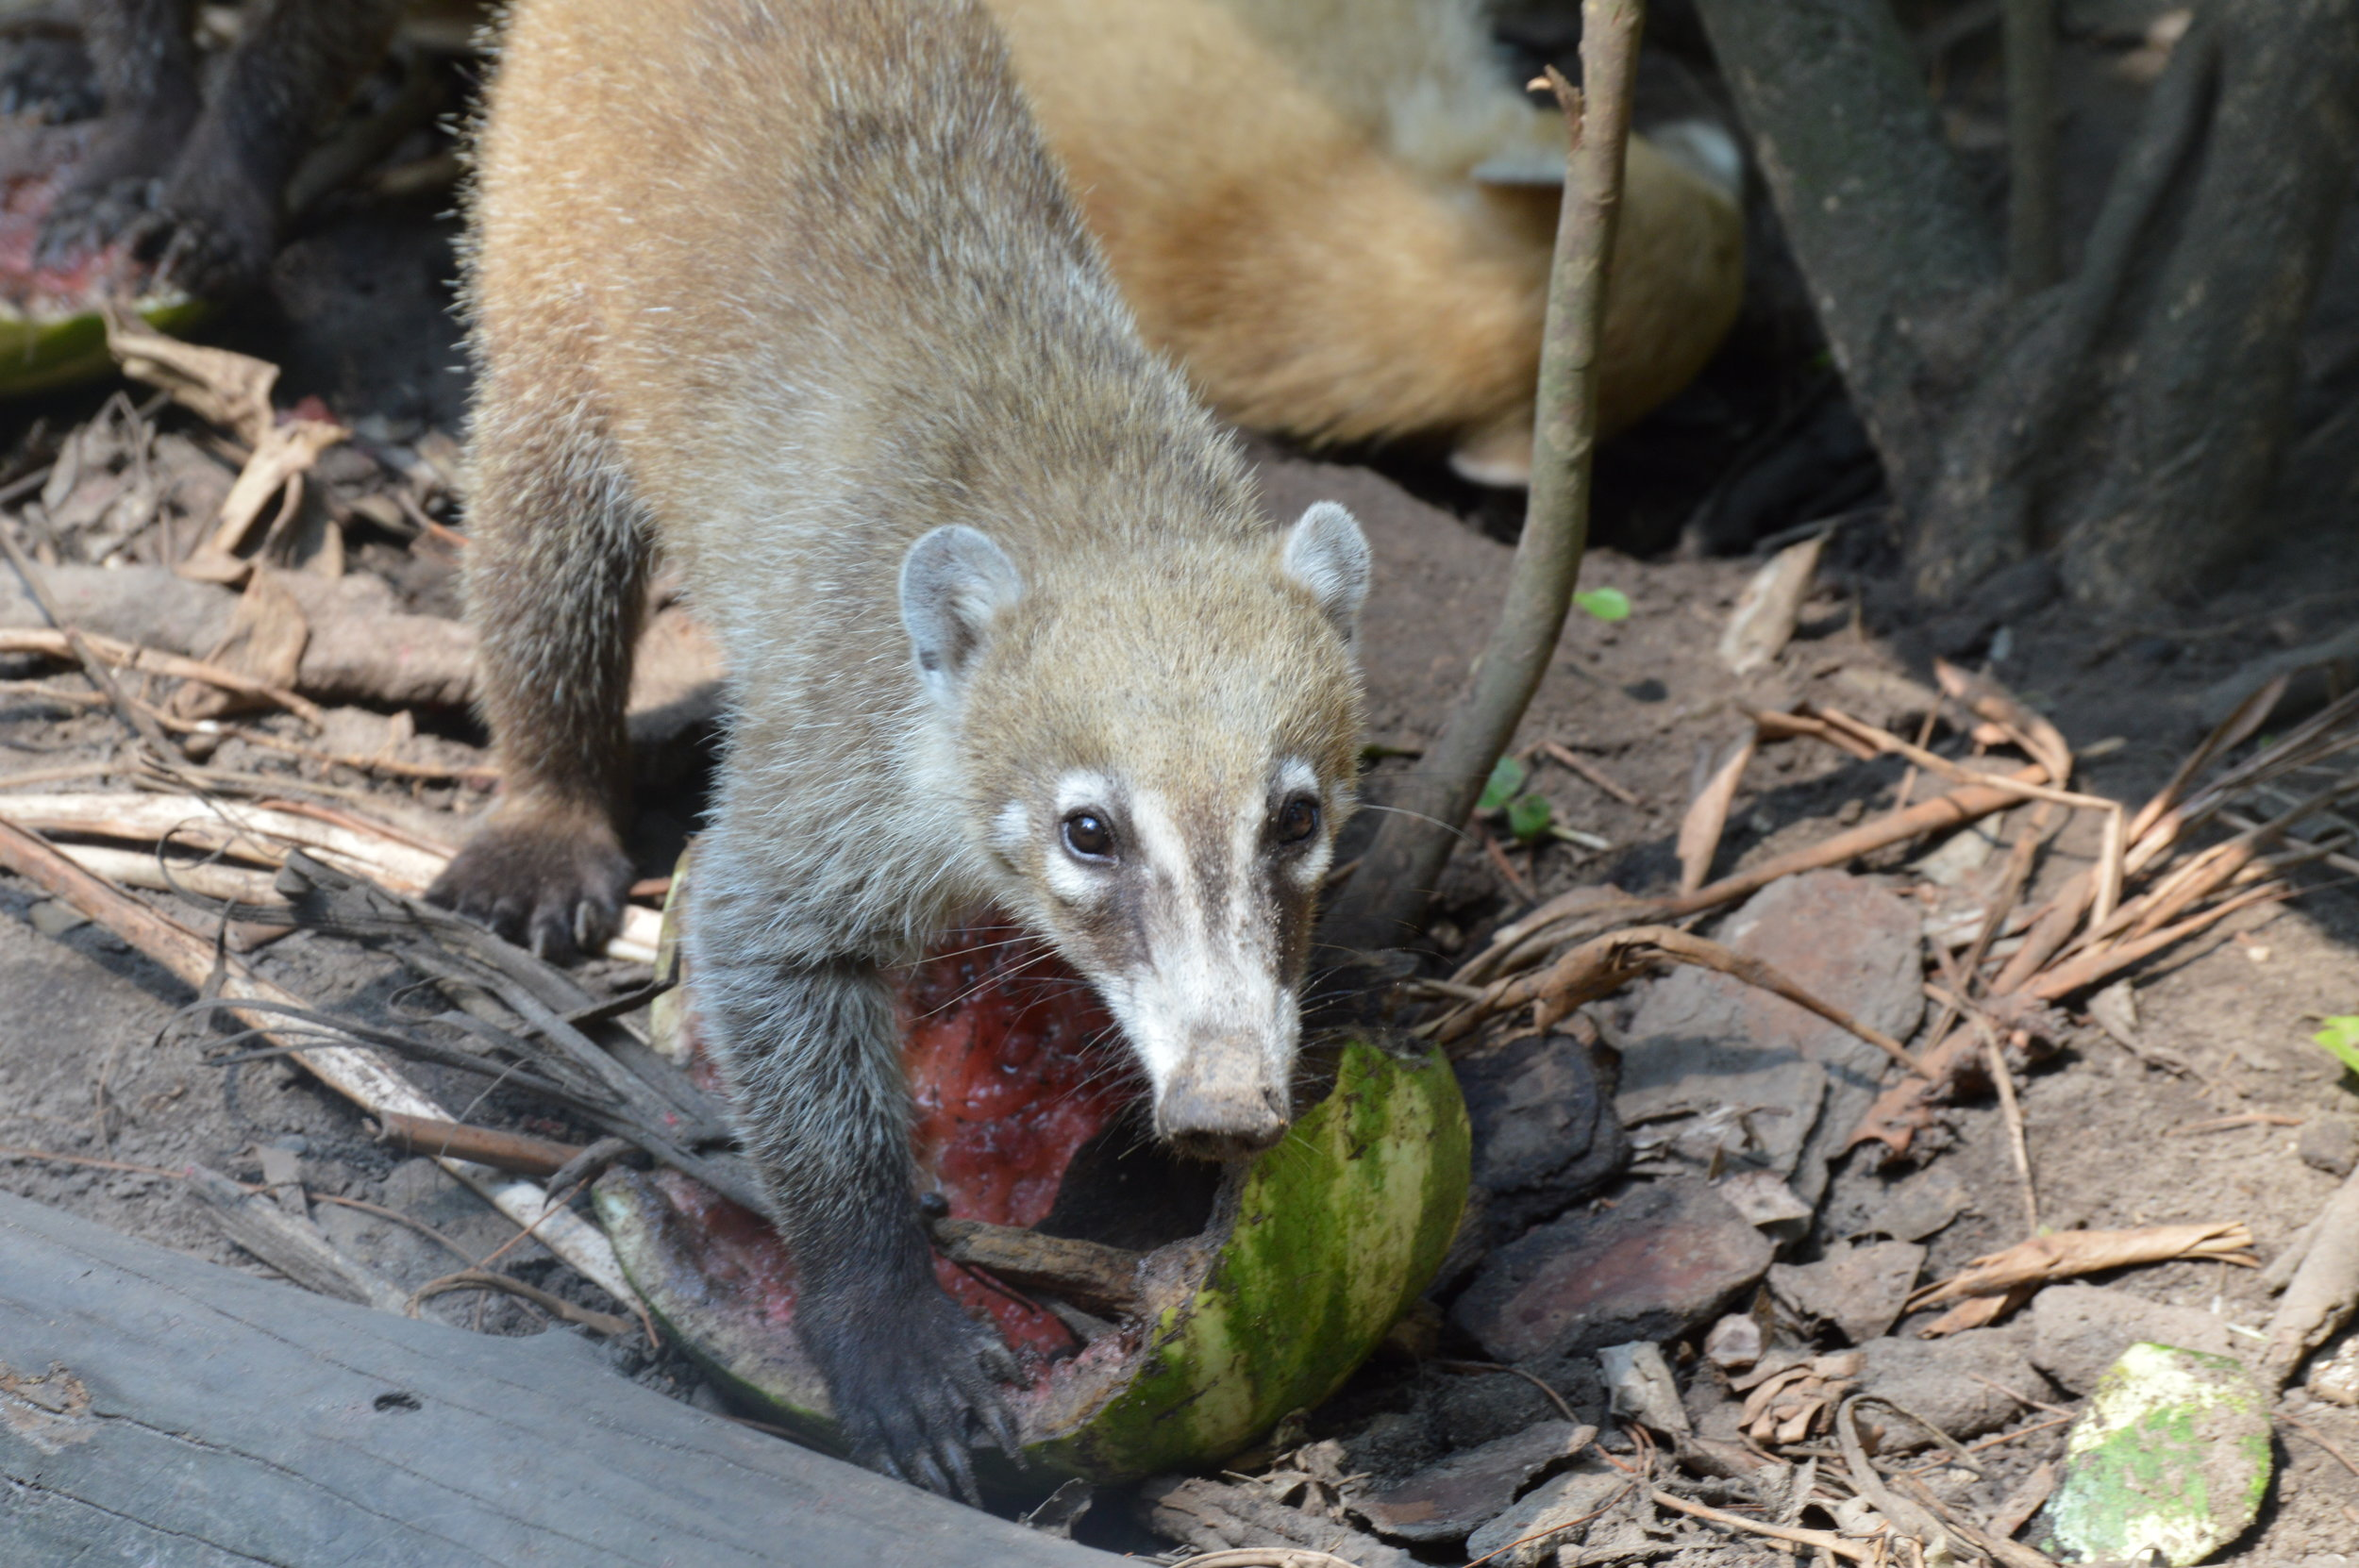 Coati - a member of the raccoon family